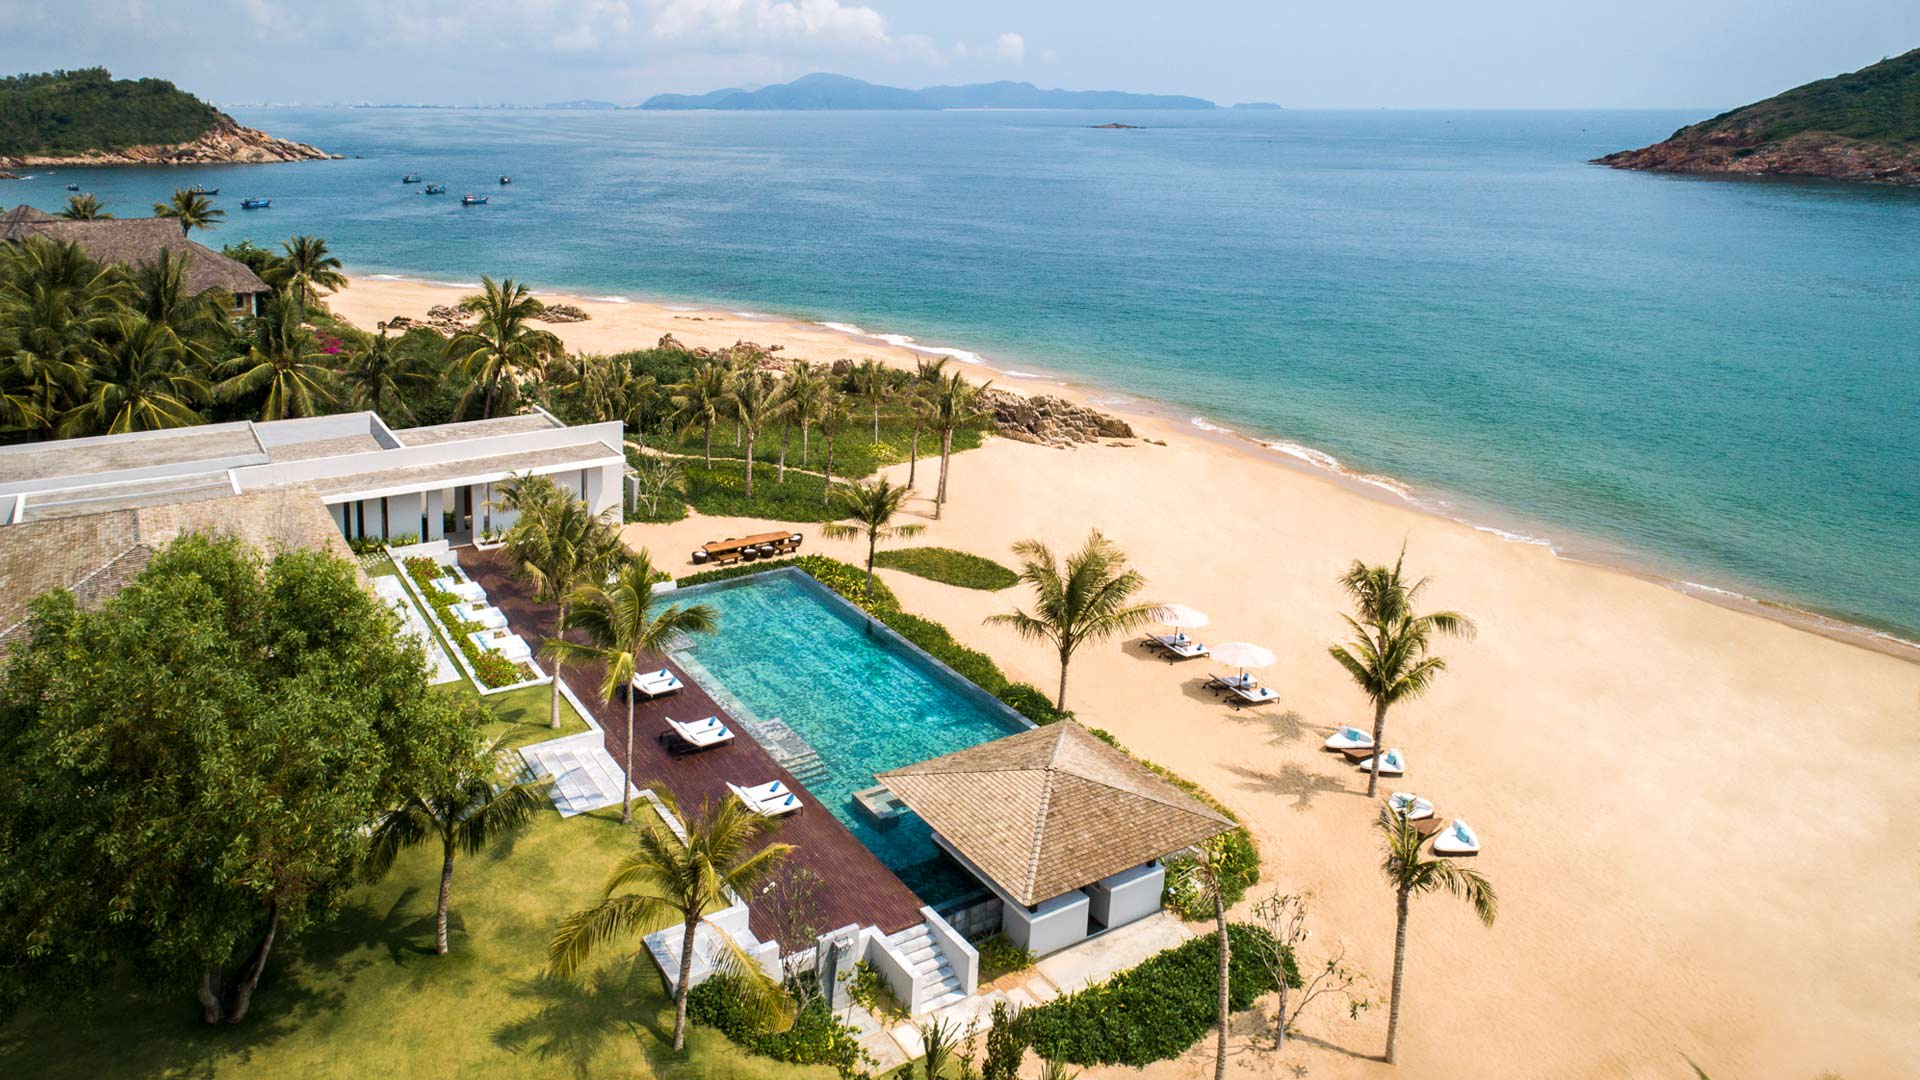 https://assets.anantara.com/image/upload/q_auto,f_auto/media/minor/anantara/images/anantara-quy-nhon-villas/the-resort/anantara_quy_nhon_villas_desktop_banner_1920x1080.jpg